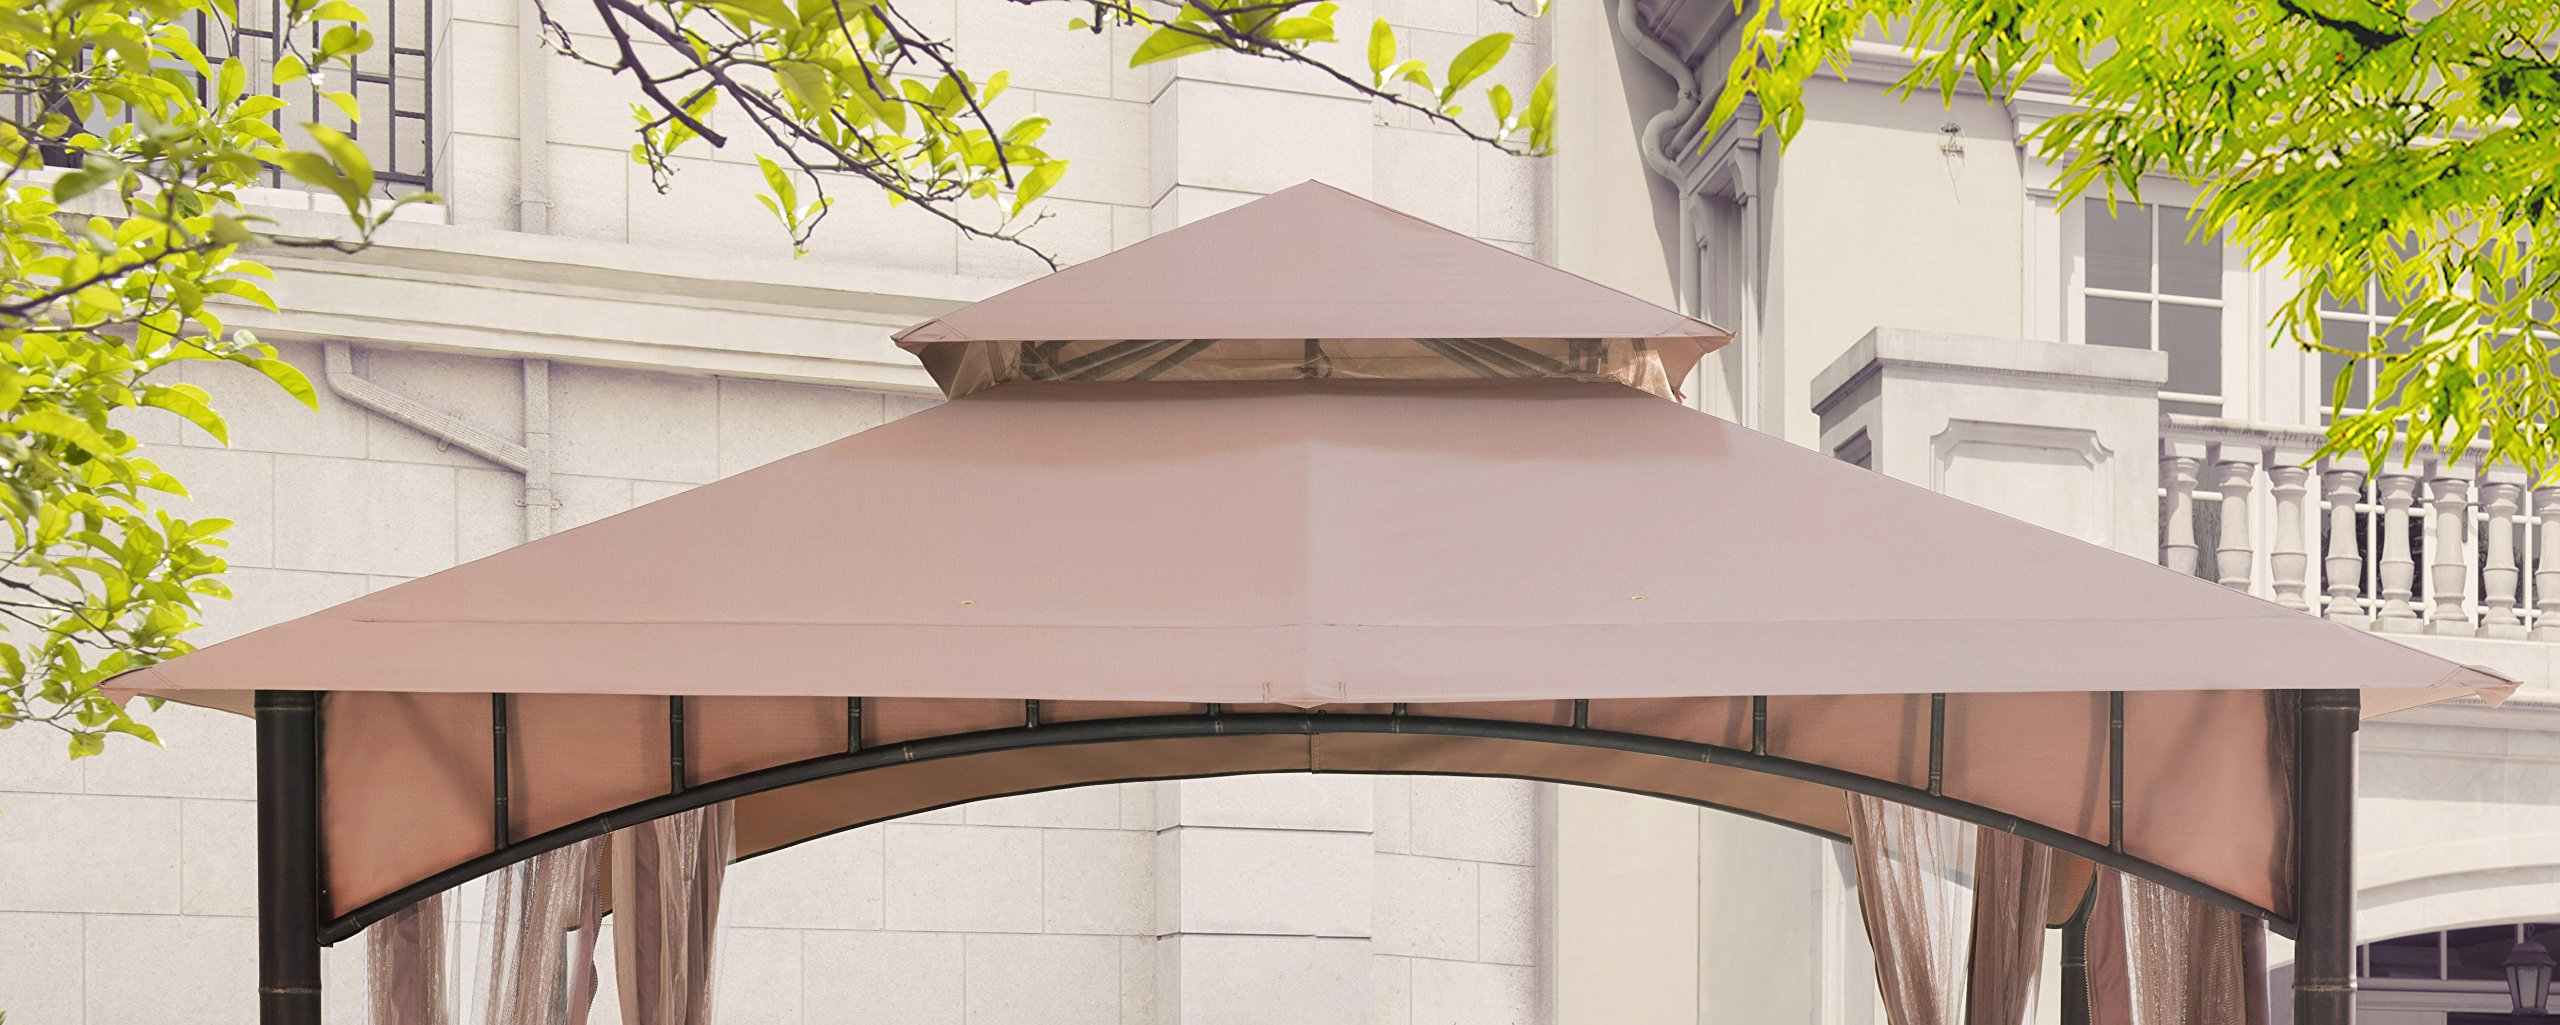 Sunjoy Canopy Accessory Replacement for Gazebo D-GZ136PST-N